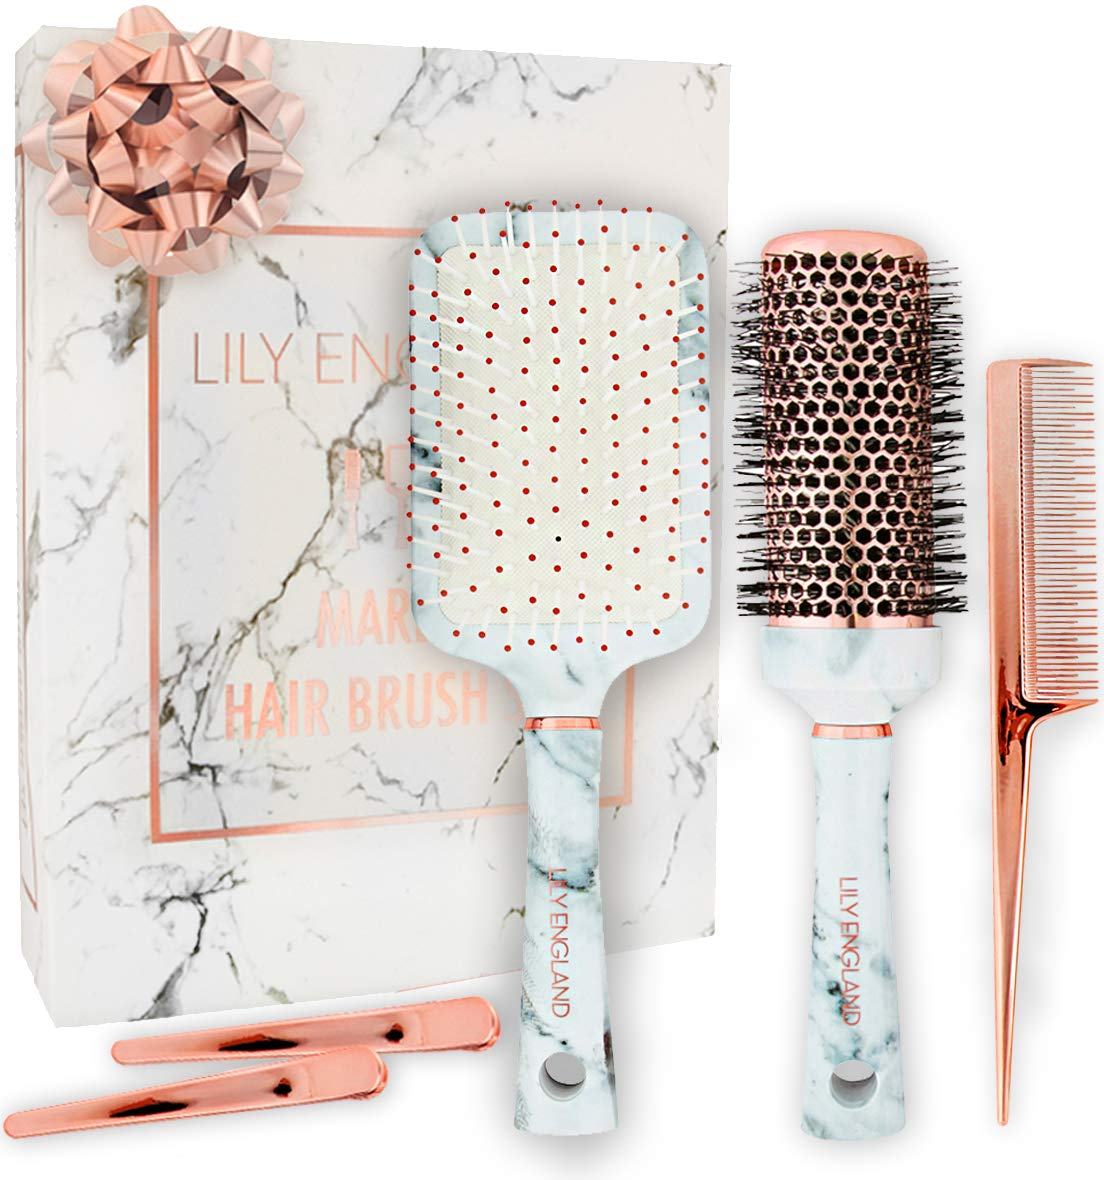 Hair Brush Set - Paddle Brush, Round Blow Drying Hairbrush, Tail Comb & Clips - Marble & Rose Gold by Lily England